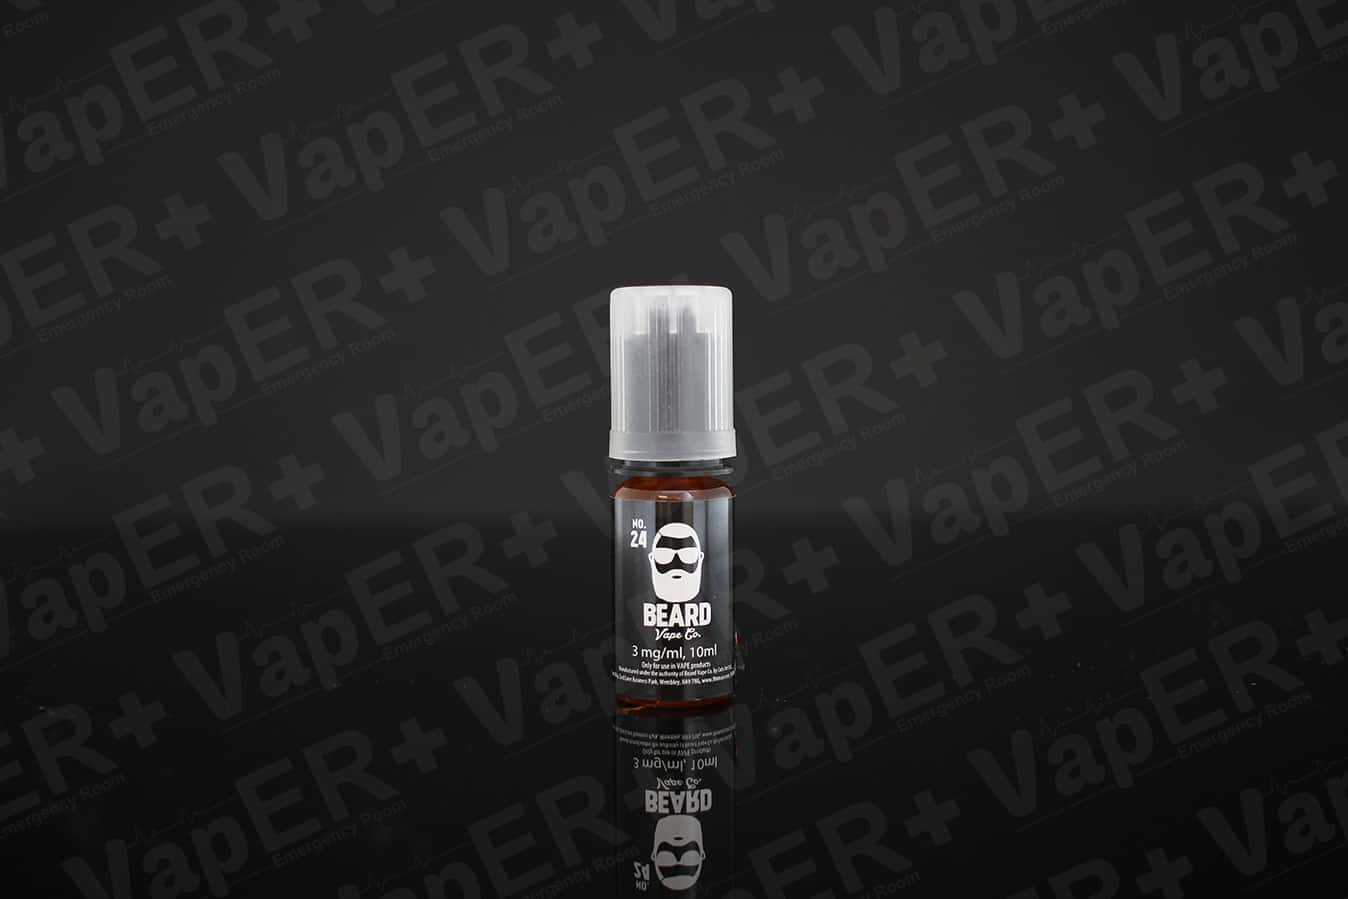 Picture of NO.24 E-Liquid by Beard Vape Co.